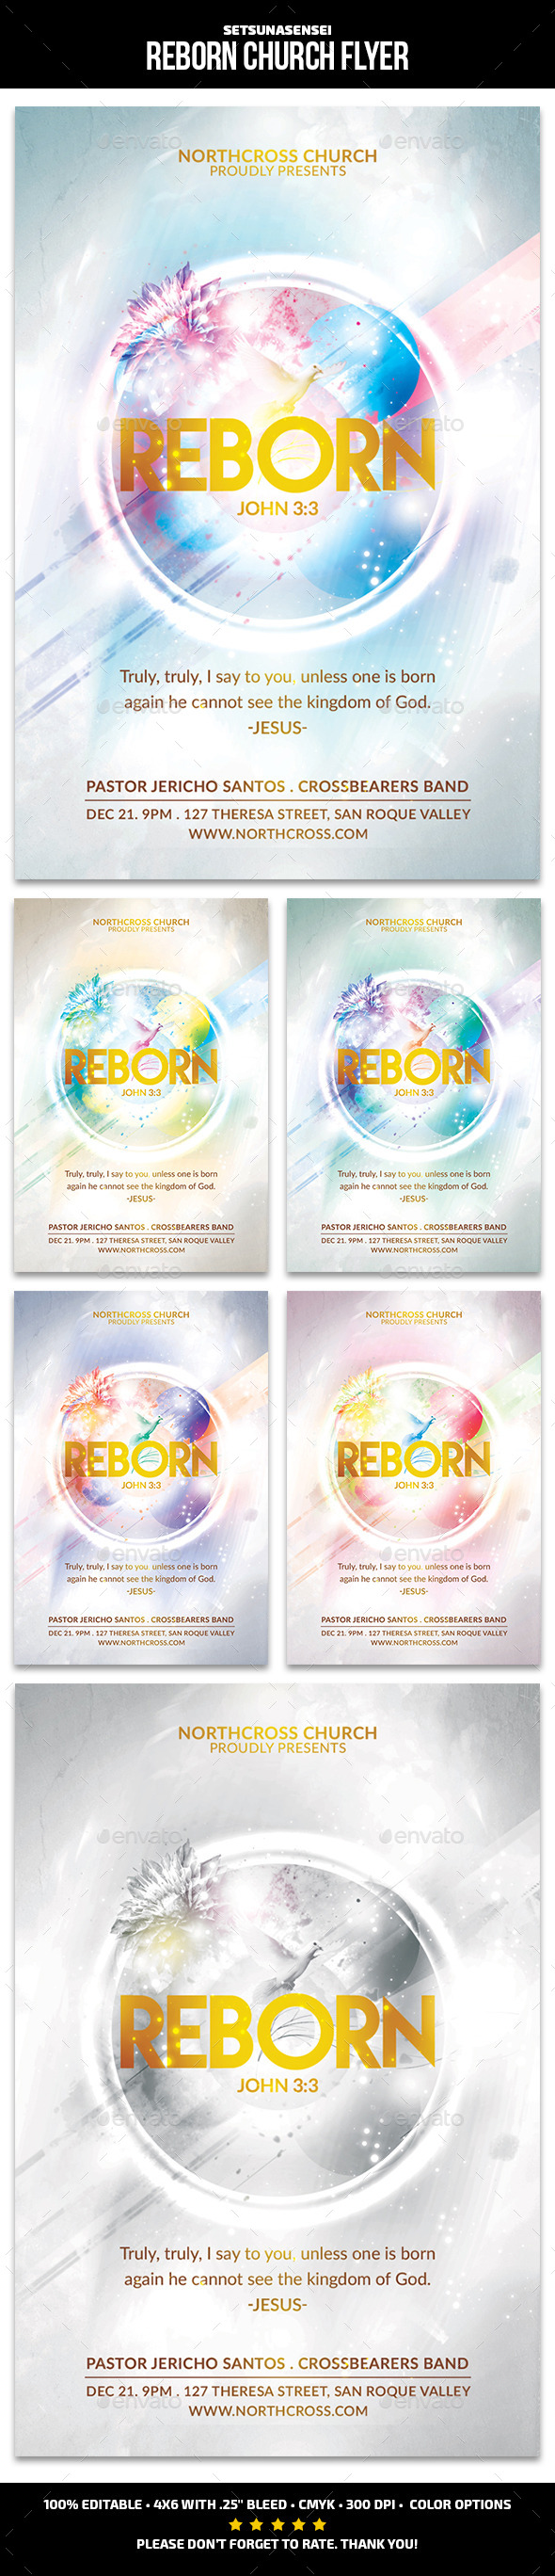 GraphicRiver Reborn Church Flyer 9606429